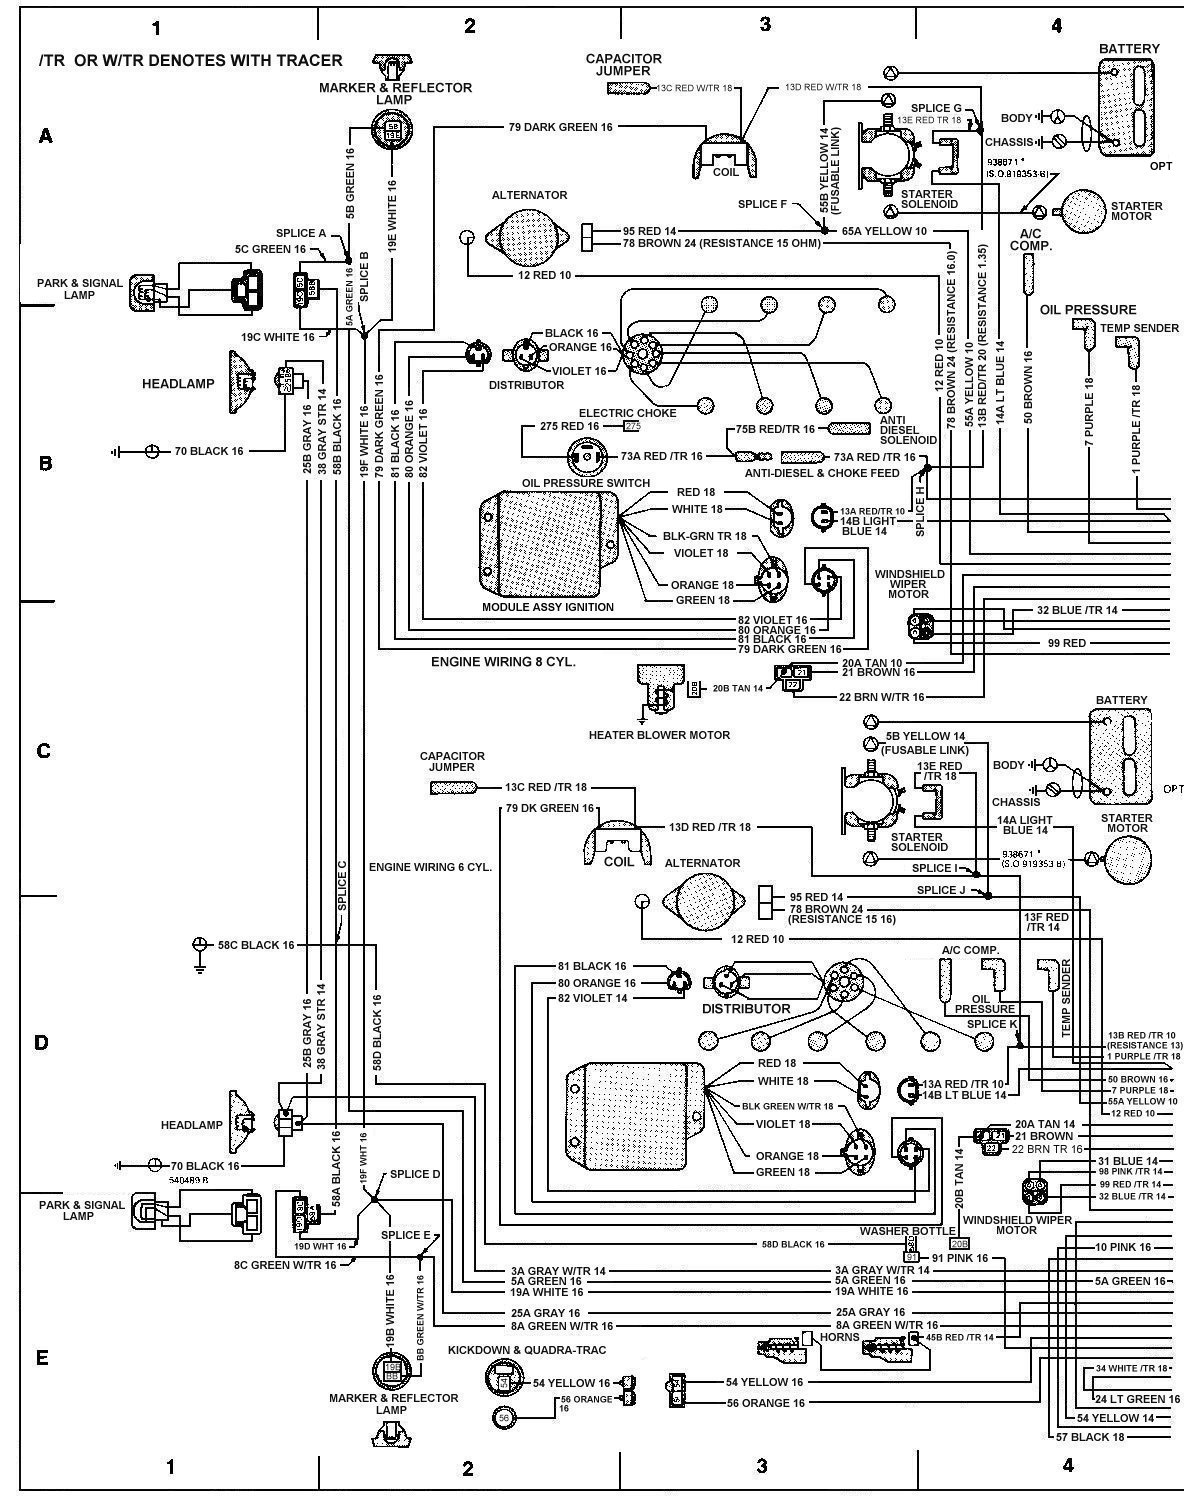 1983 jeep j10 wiring diagram 1979 full size jeep cherokee engine change - jeepforum.com #6